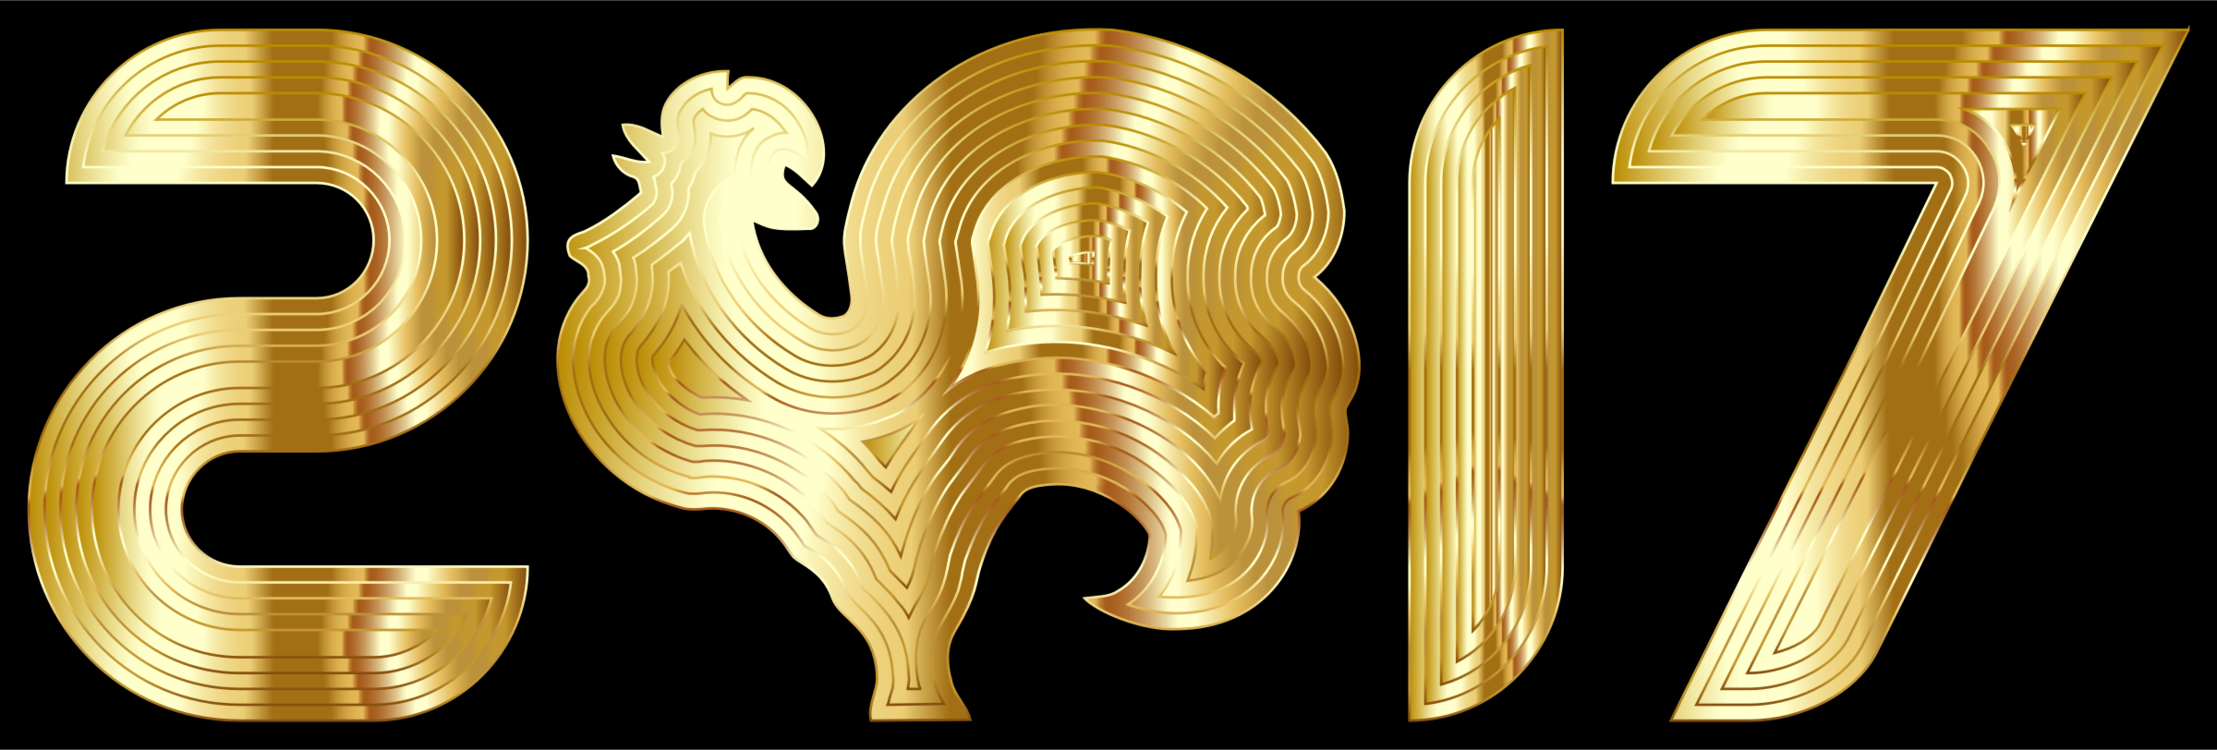 Gold,Text,Material